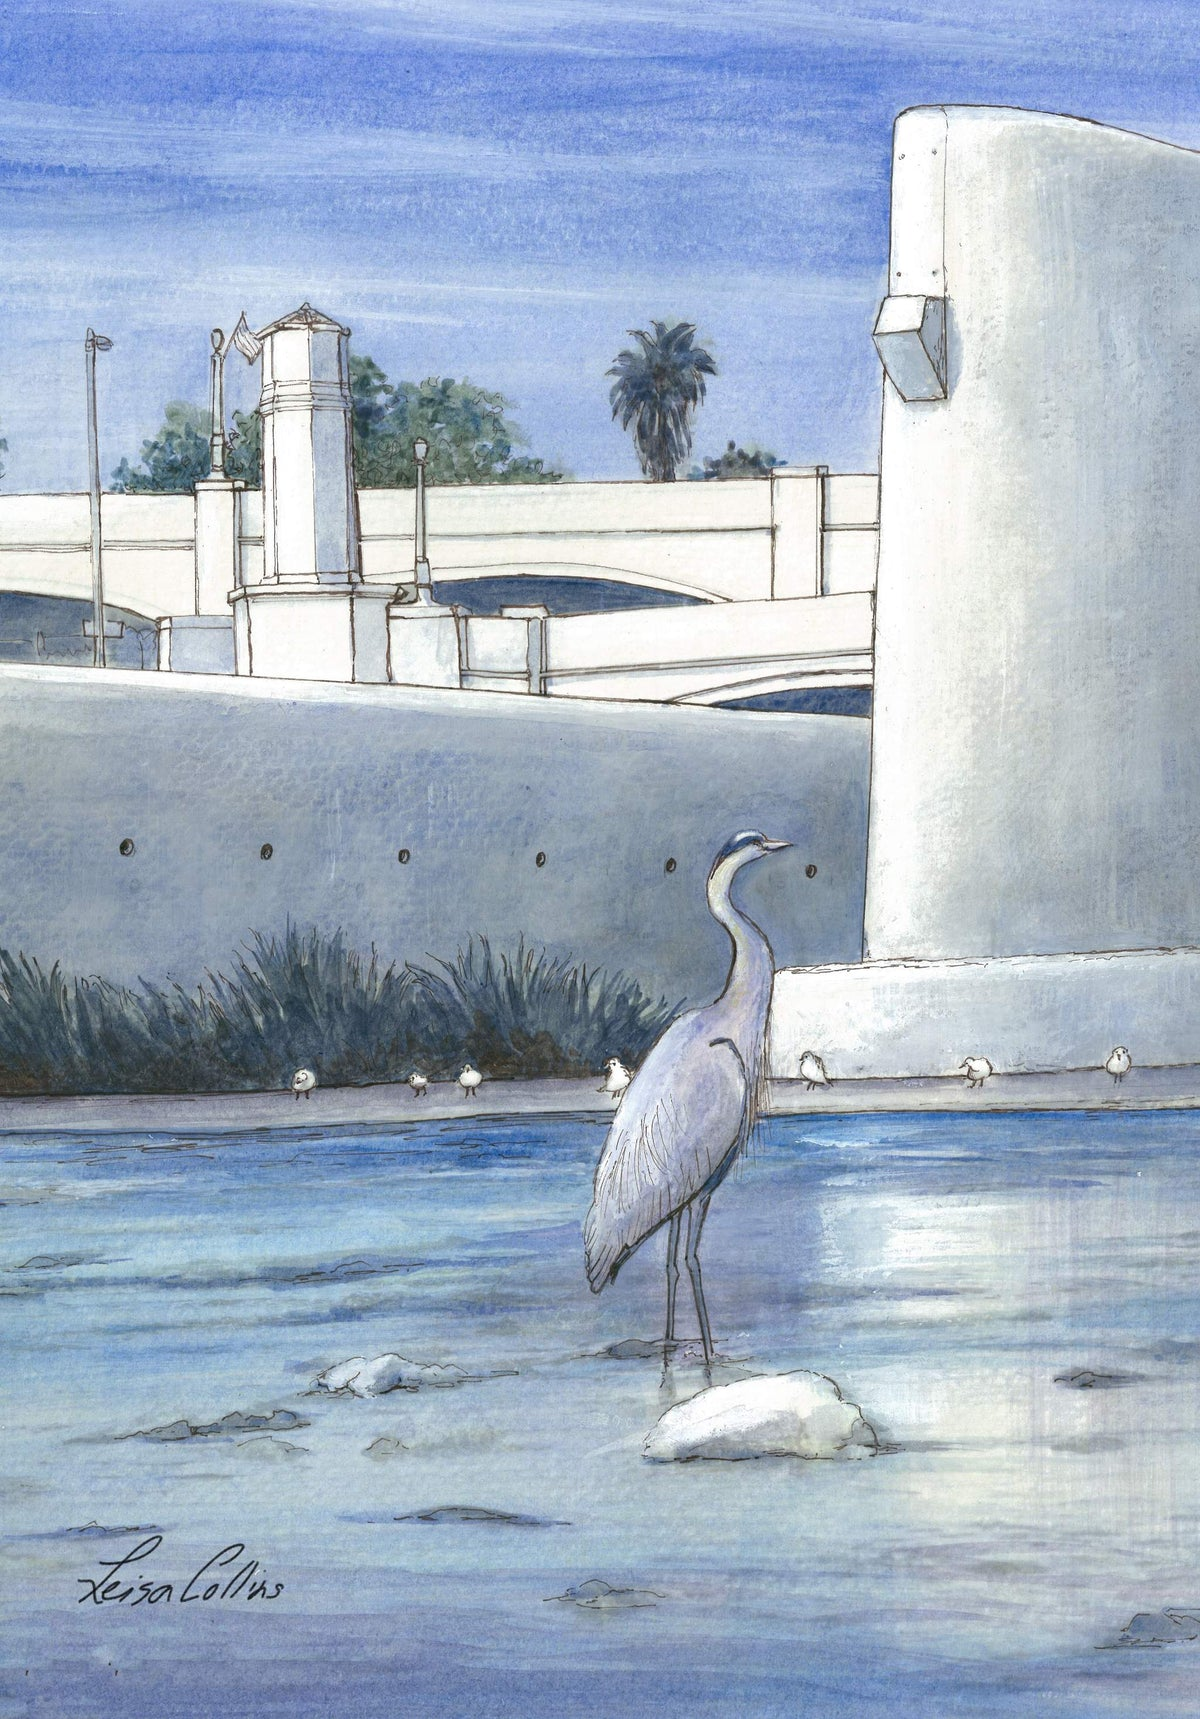 leisa-collins-art-shop - Atwater Village Los Angeles River - Pen and watercolor